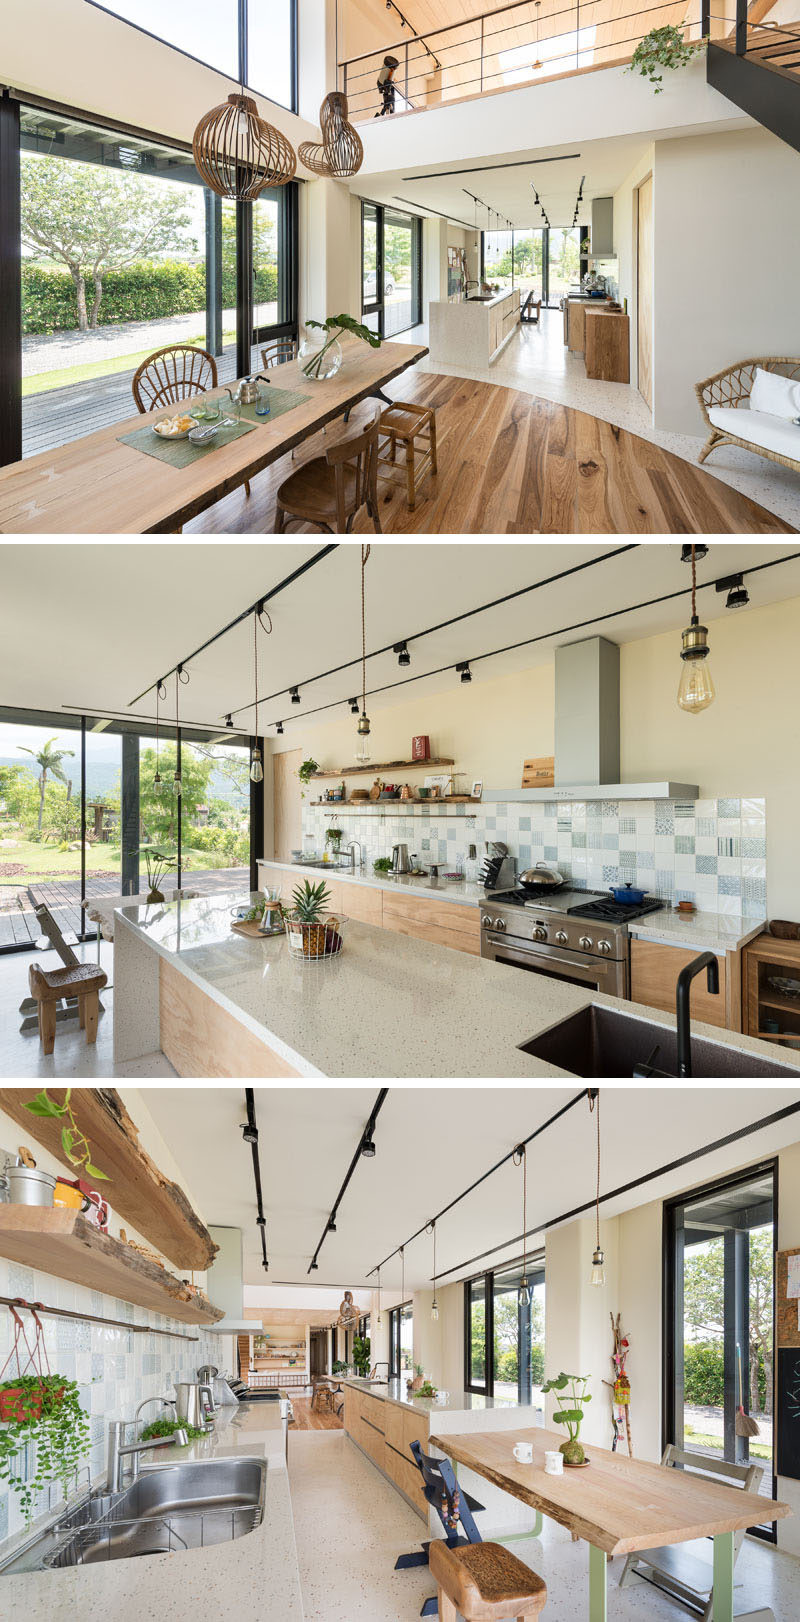 This modern house has kitchen with a long kitchen island that transforms into a casual dining area, while lower cabinets line the wall and raw edge floating shelves sit above the tile backsplash. #KitchenDesign #ModernKitchen